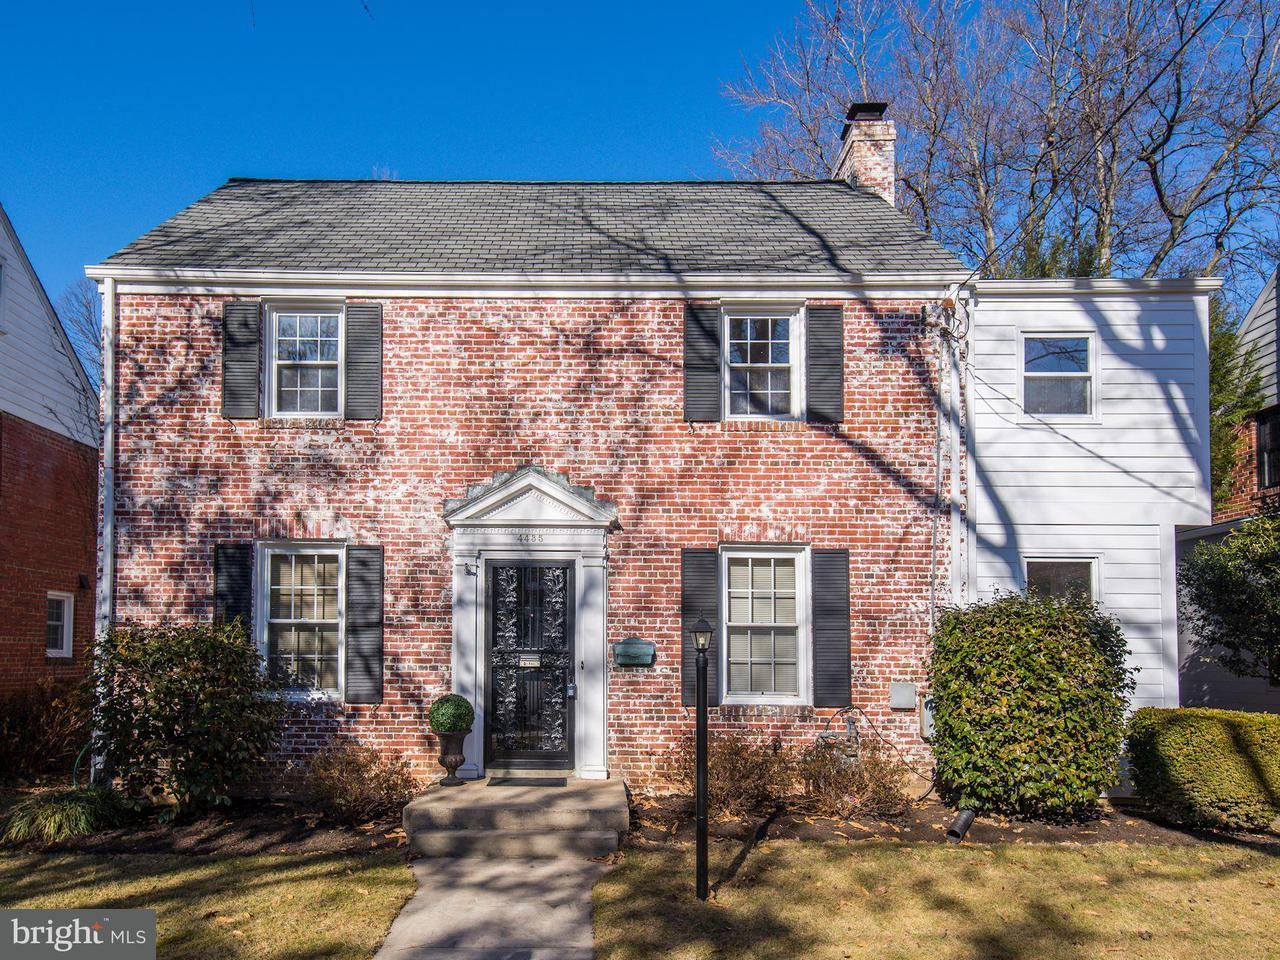 Single Family Home for Sale at 4435 Chesapeake St Nw 4435 Chesapeake St Nw Washington, District Of Columbia 20016 United States